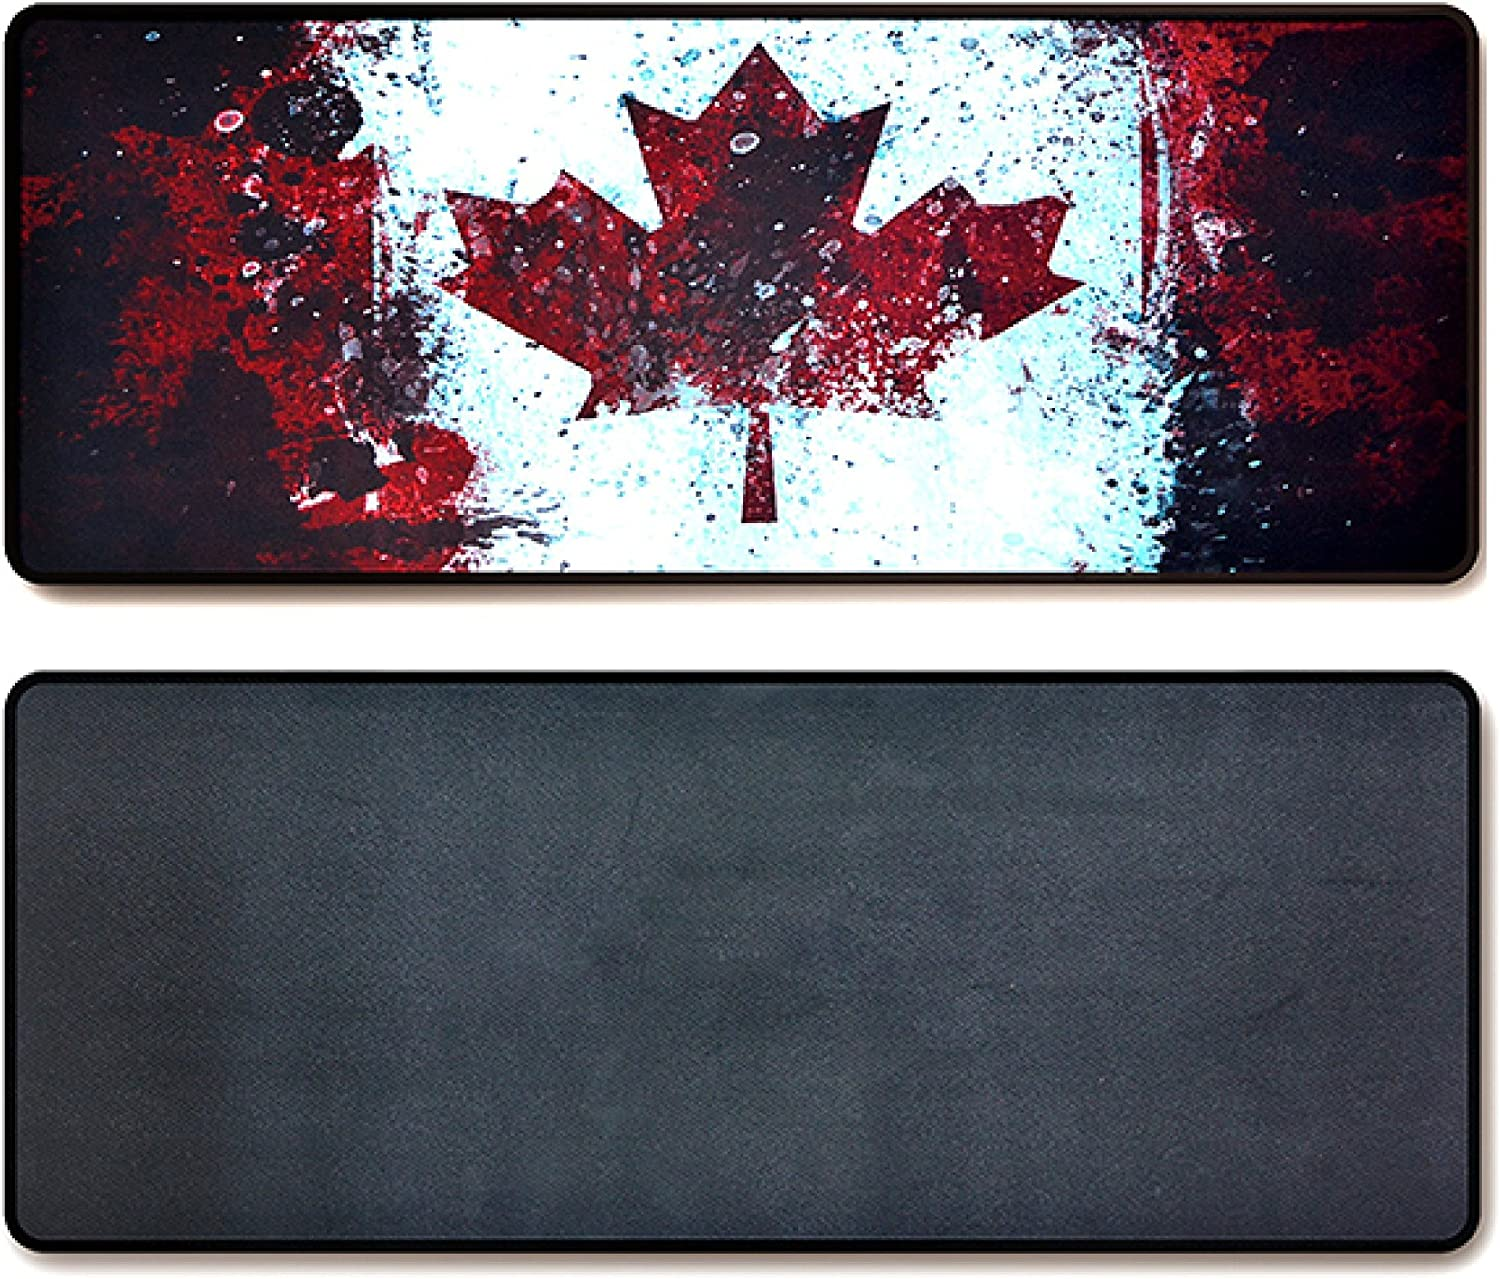 Large Gaming Mouse Pad & Desk Keyboard Mat Extended XXL Size, Heavy Thick, Soft for Desktop, Laptop, Keyboard, Vintage Retro Style with Stitched Edges, Non-Slip Rubber Base (Canadian Flag)